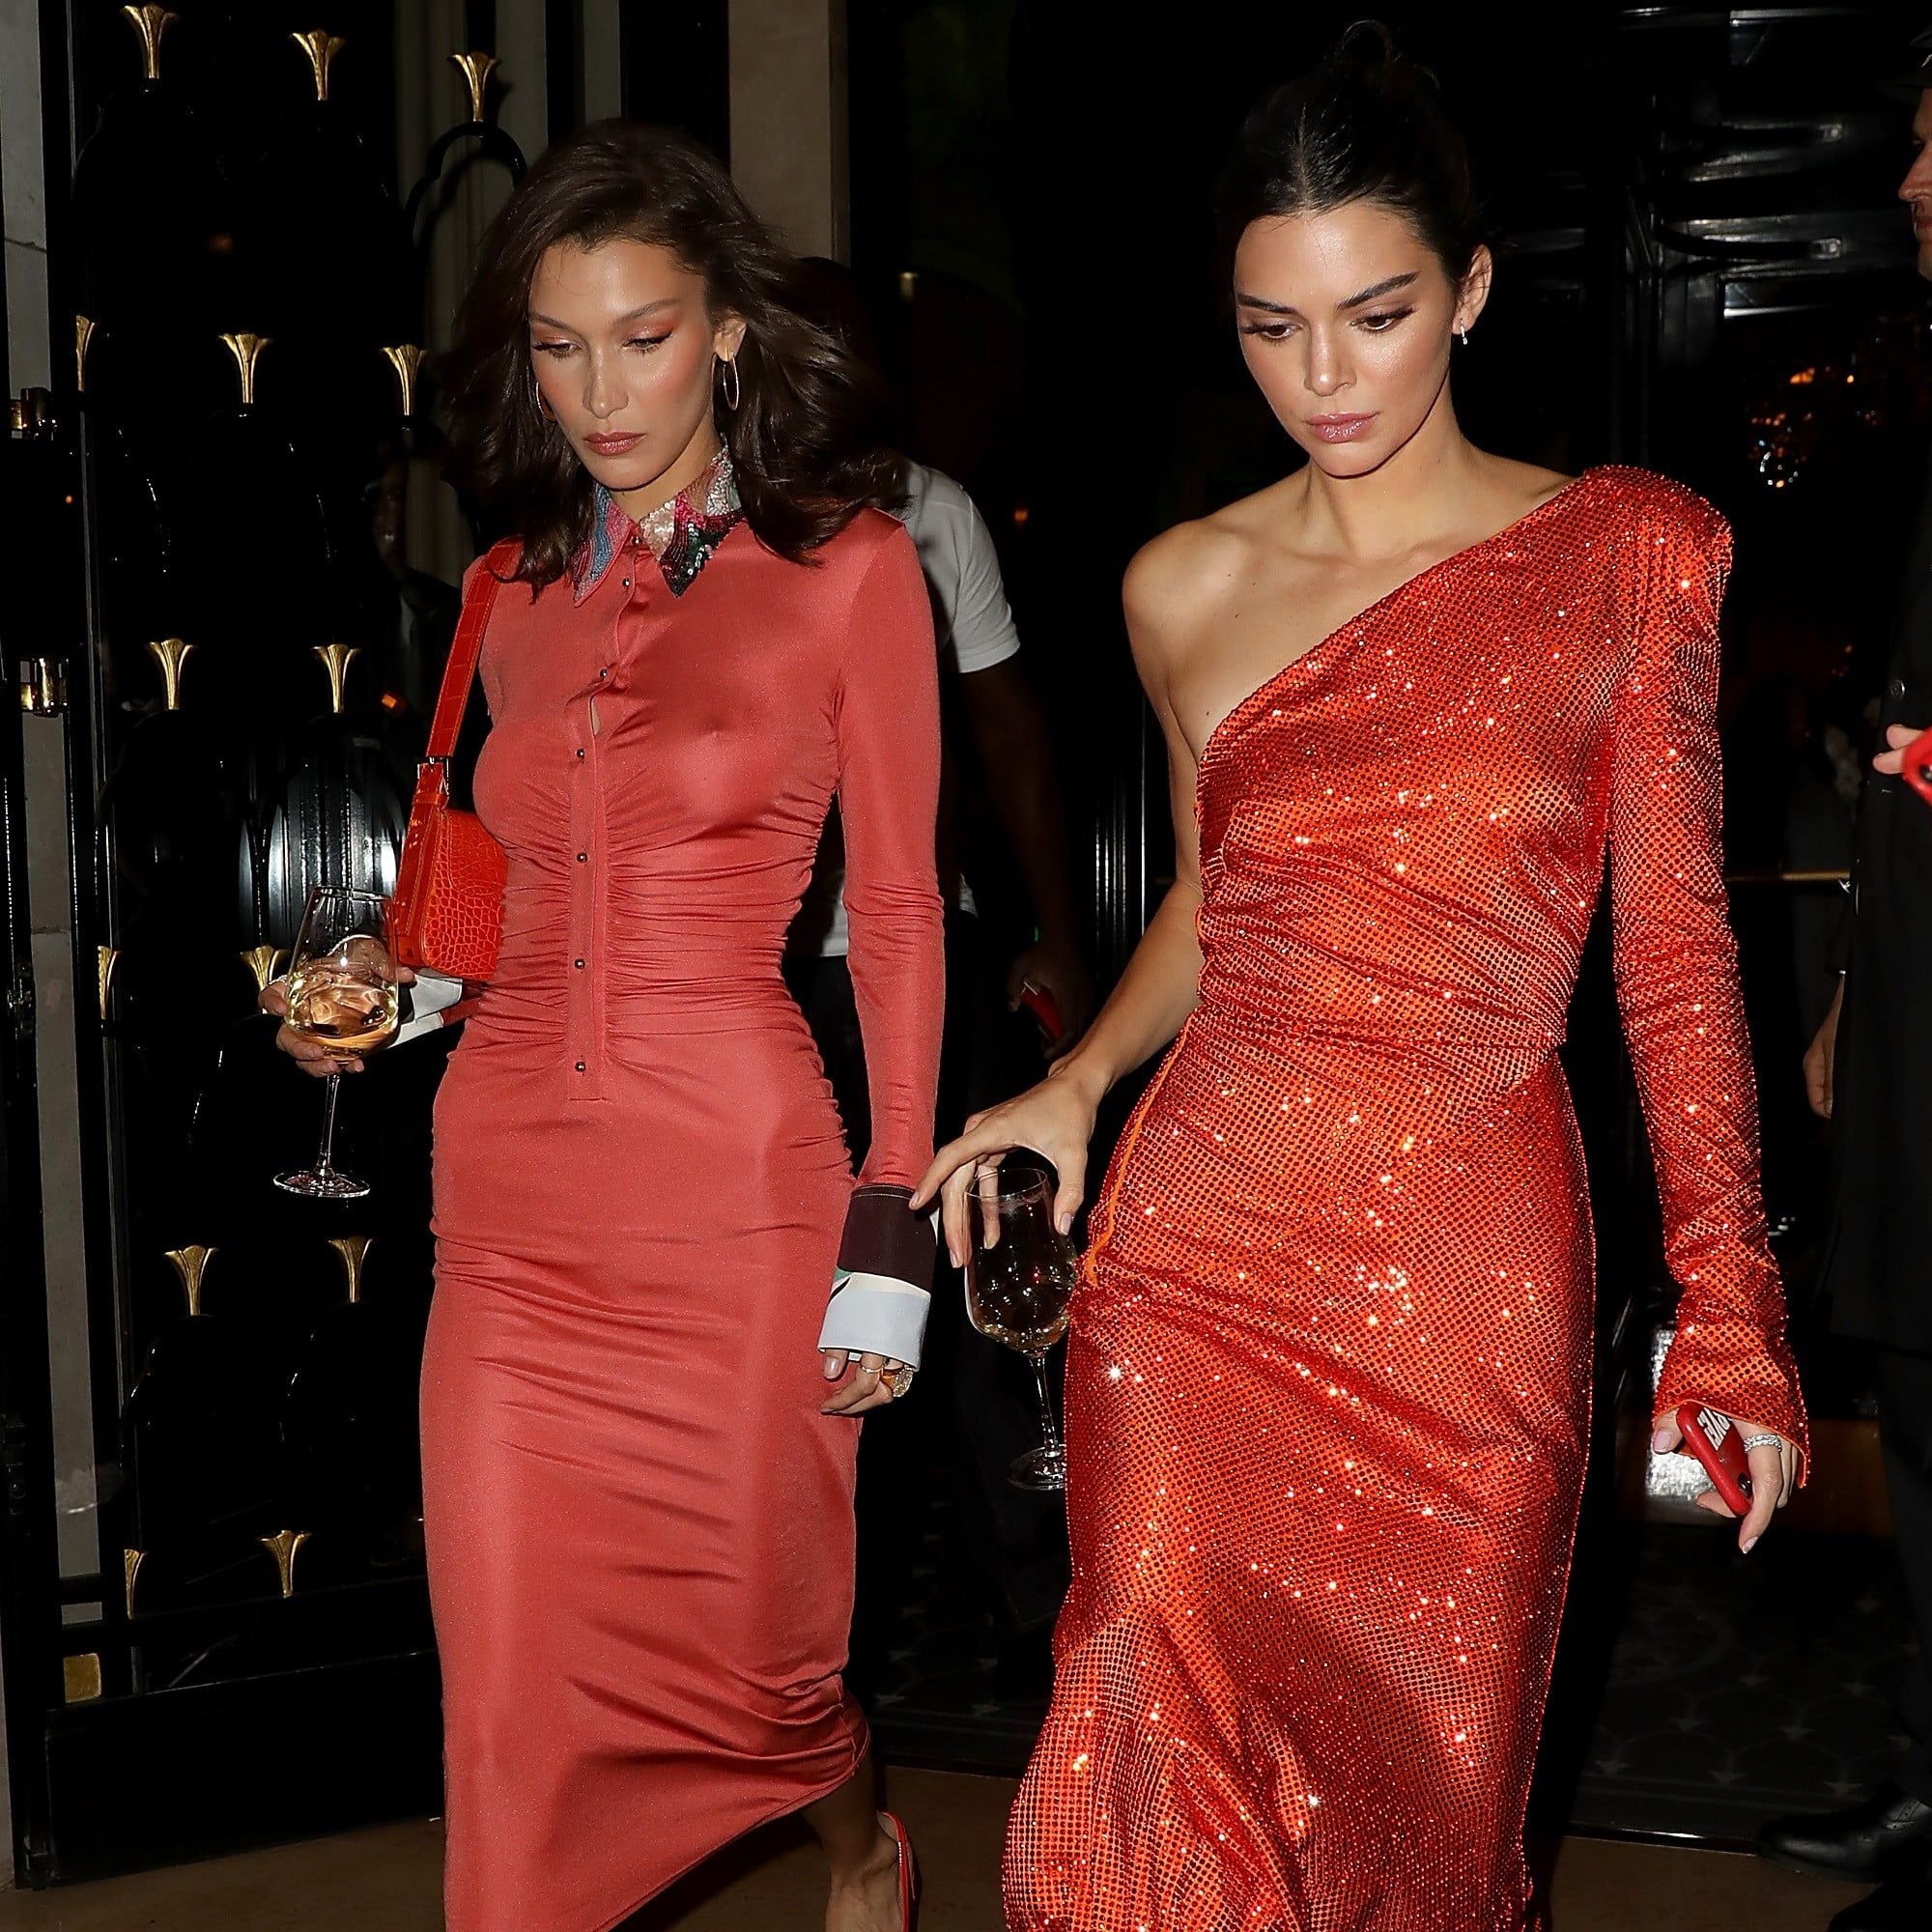 39b65e6fe243 Kendall Jenner and Bella Hadid in Orange Dresses in Paris